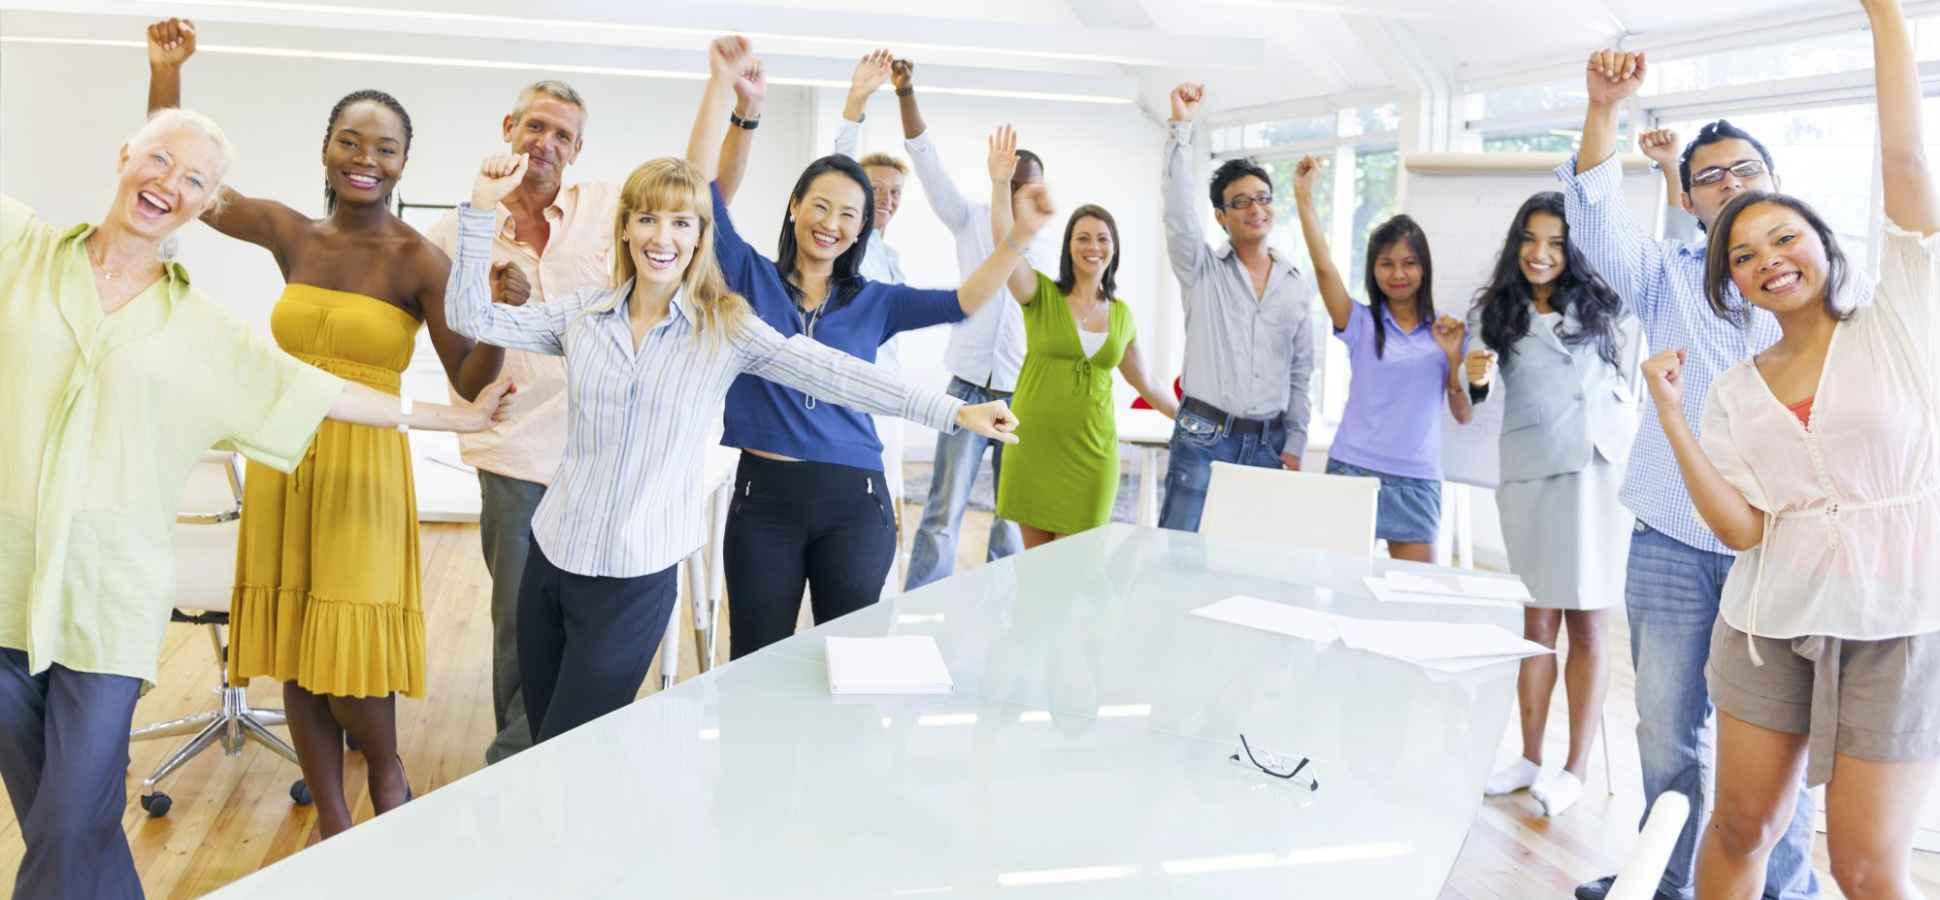 8 Highly Effective Perks to Motivate Employees